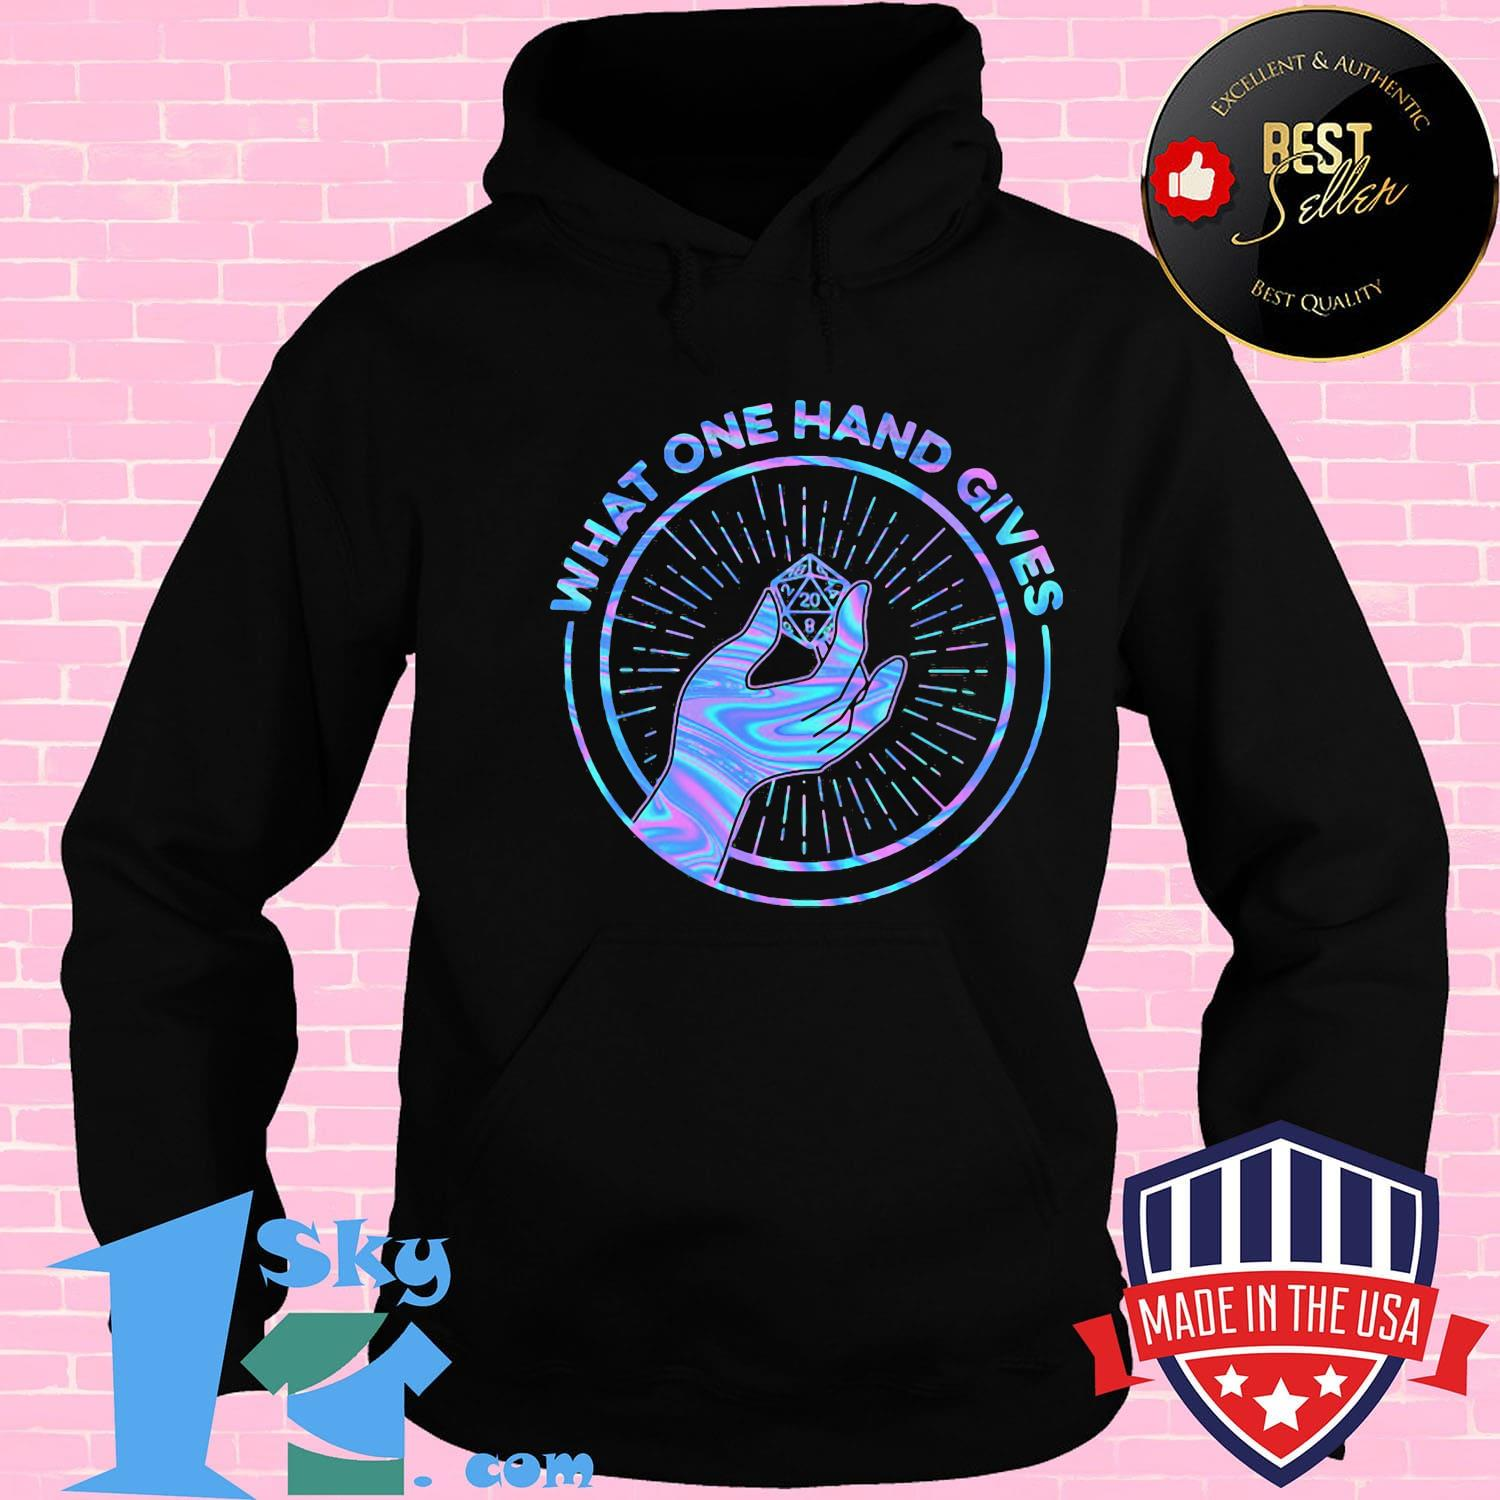 56cc2ee8 what one hand gives dungeons and dragons dice d20 shirt hoodie - Shop trending - We offer all trend shirts - 1SkyTee